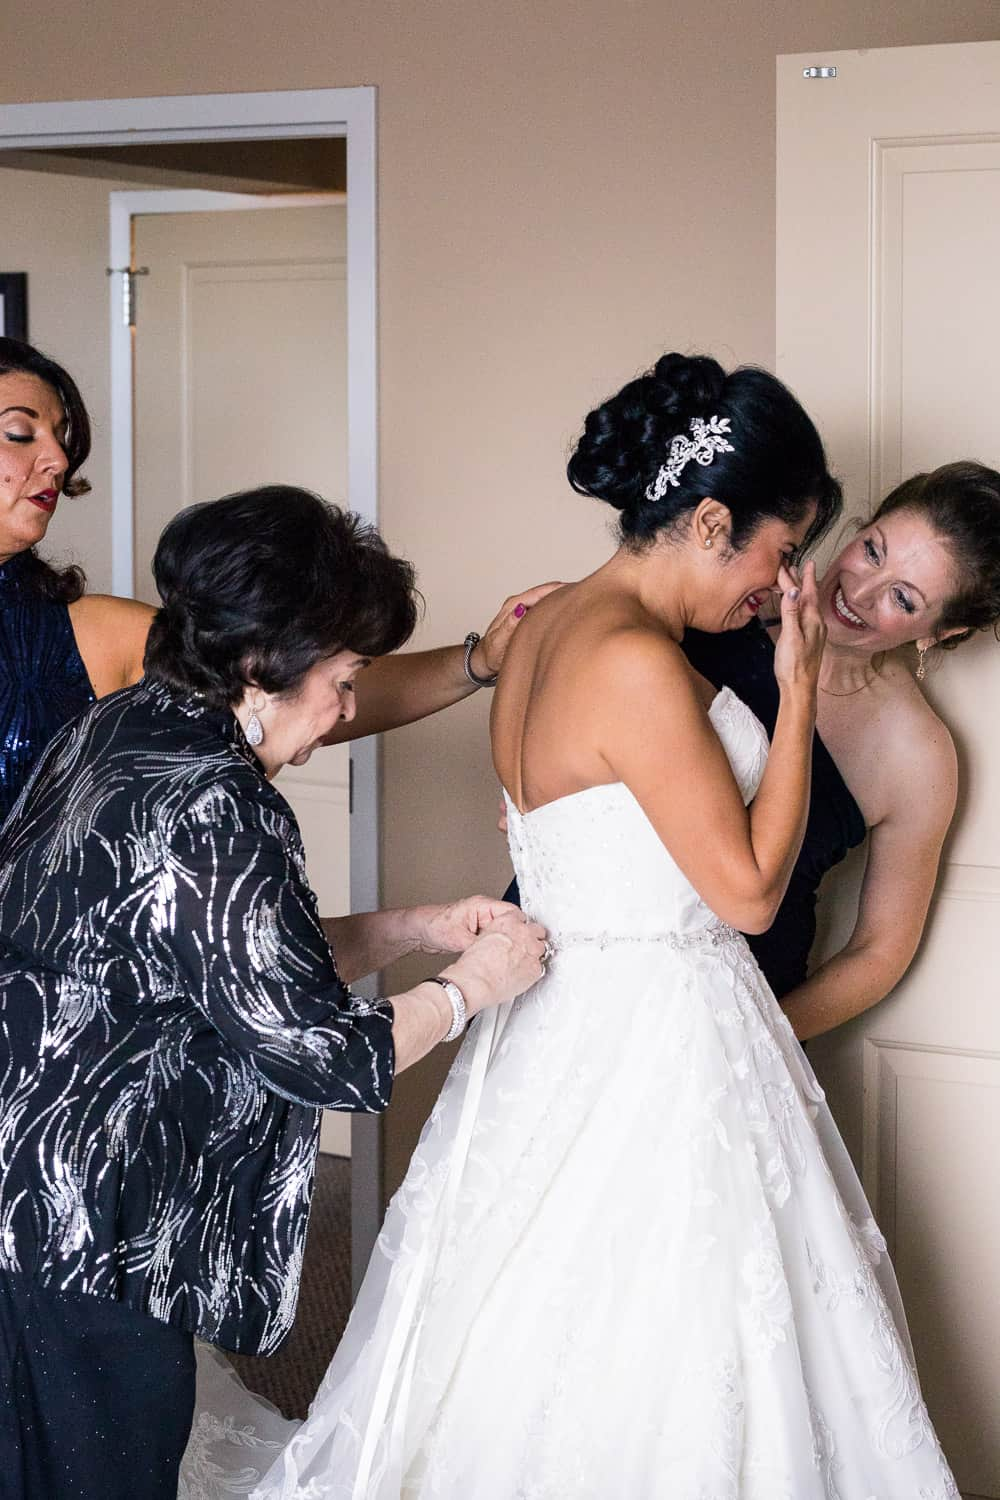 Rosemary putting on her wedding dress at strathallan hotel and crying.